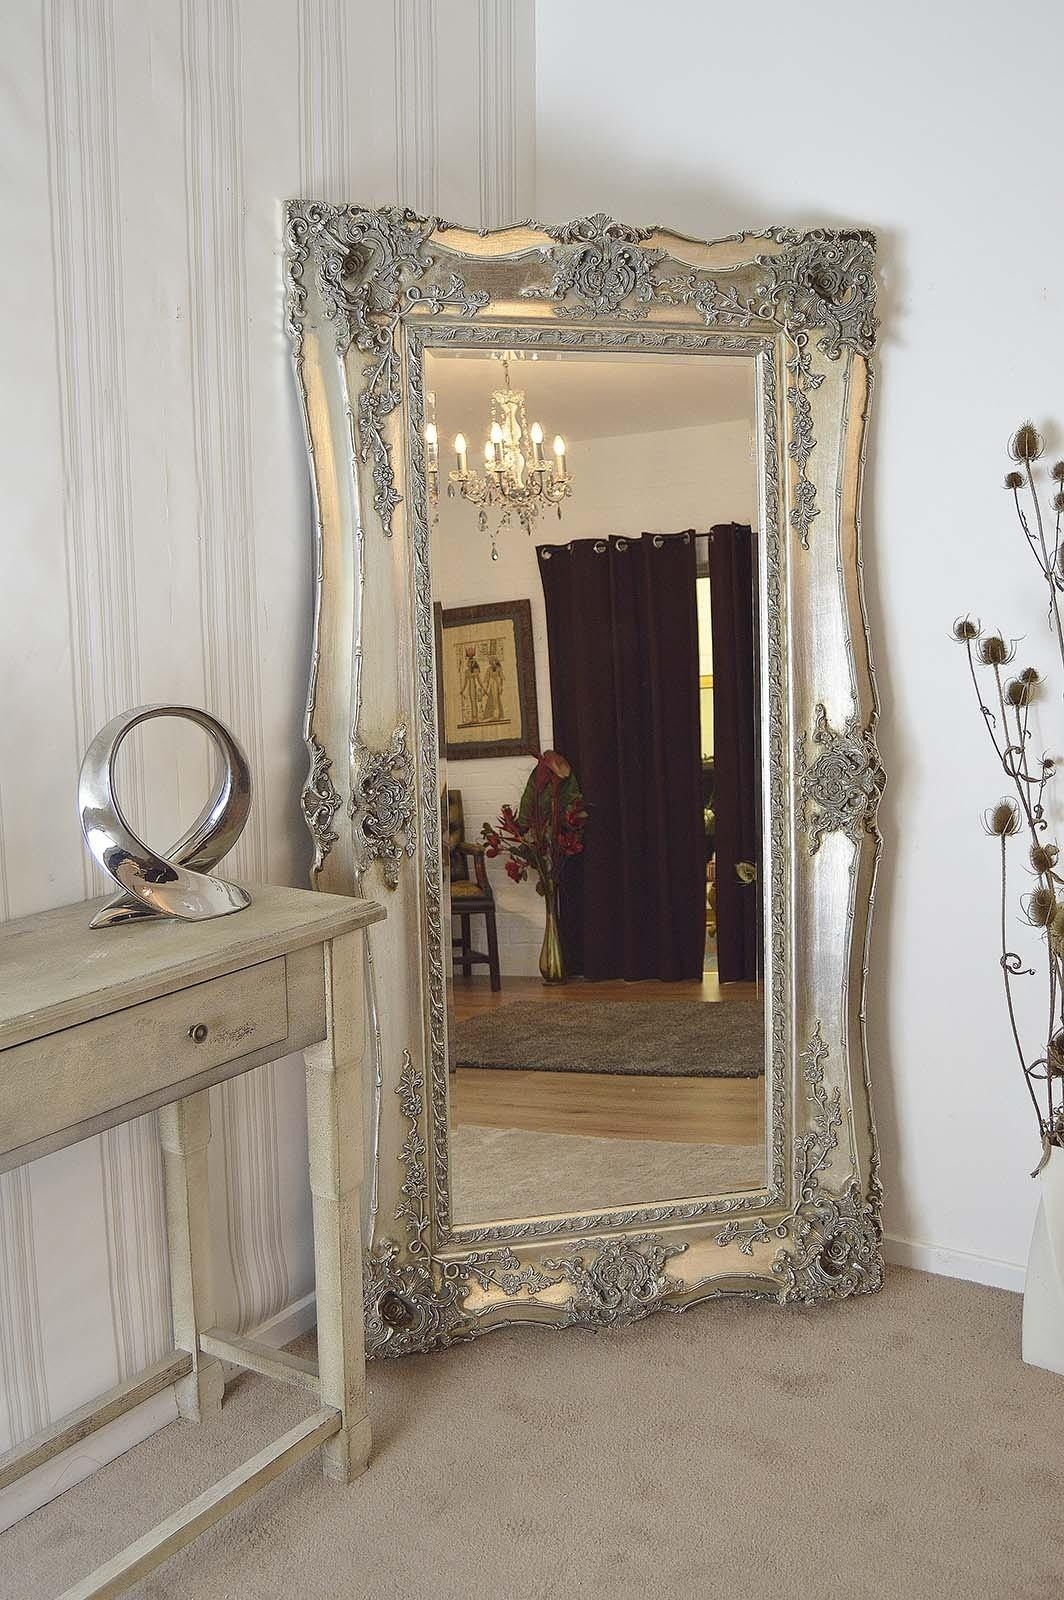 Large Antique Wall Mirror Ornate Frame Antique Ornate Wall Mirrors With Regard To Antique Mirrors Large (Image 14 of 20)